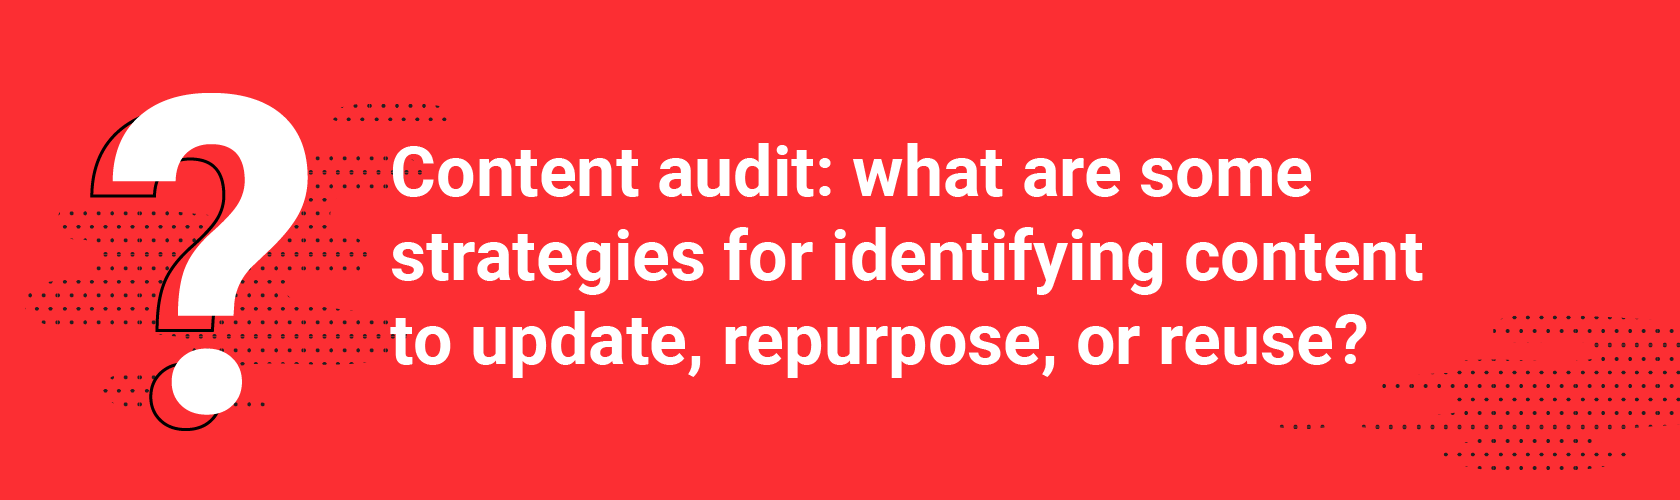 Q2. Content audit: what are some strategies for identifying content to update, repurpose, or reuse?